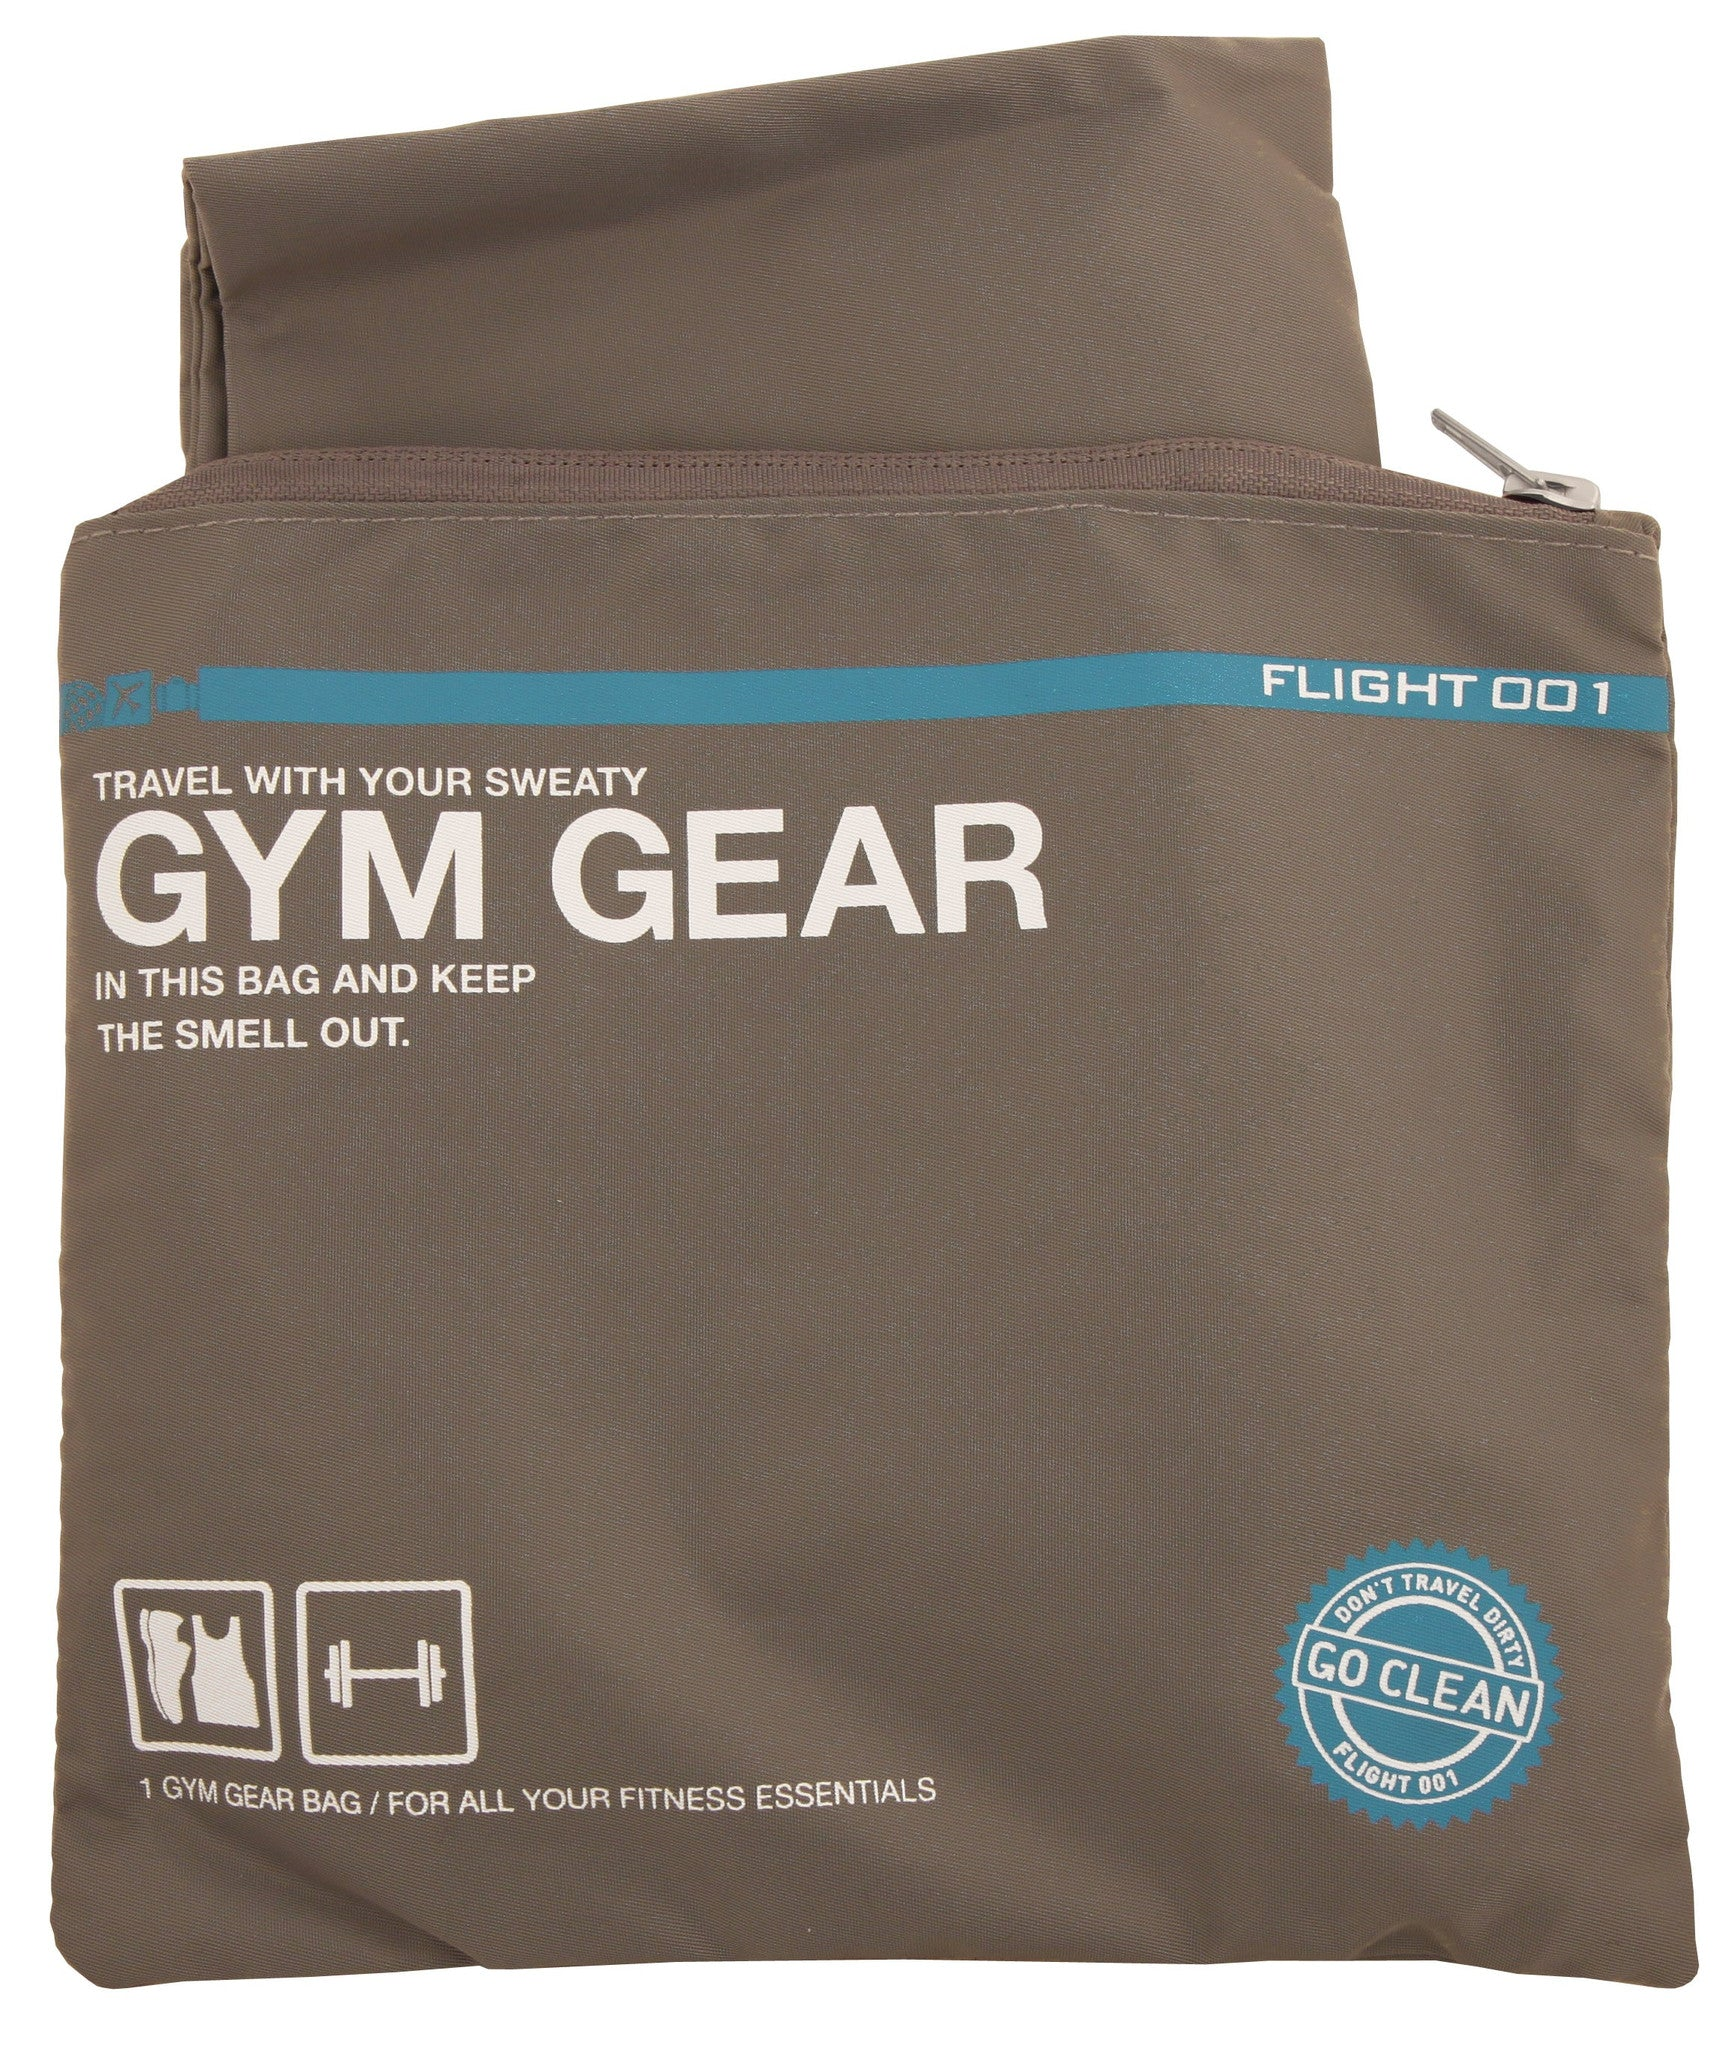 gym bag for travel go clean flight 001 business travel life